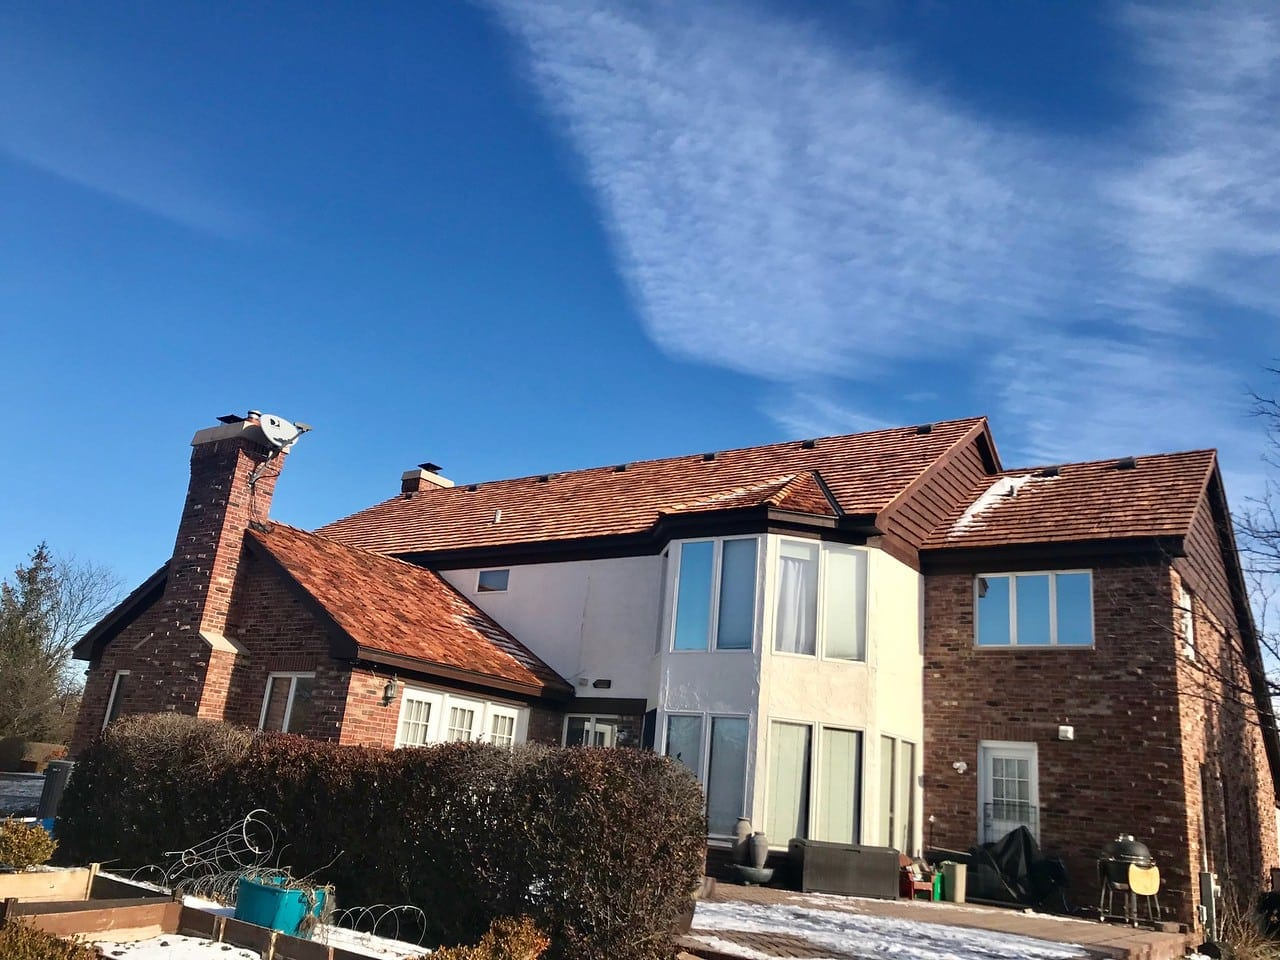 It may be wise to upgrade your roofing material when you get a replacement